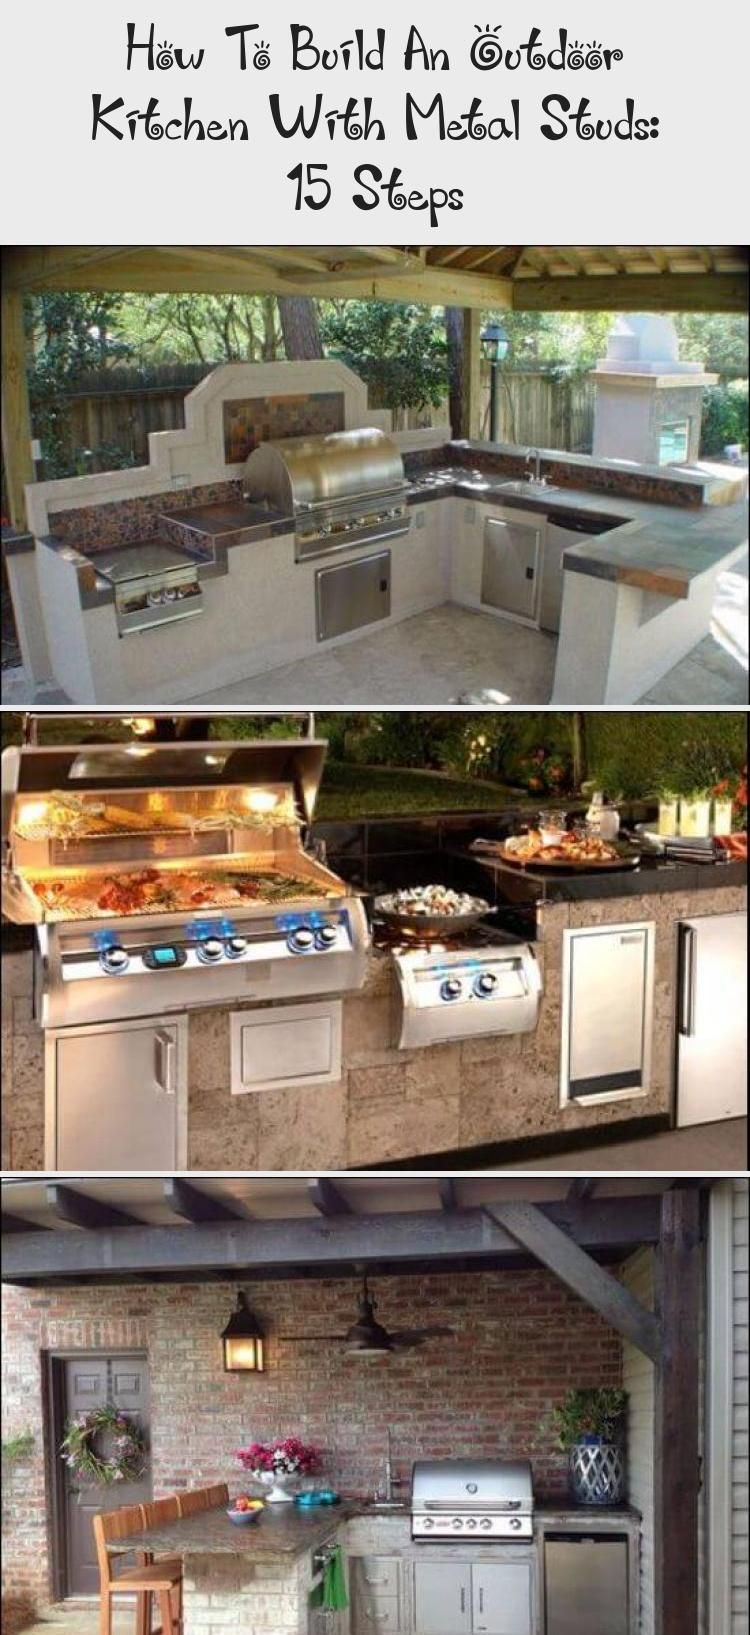 How To Build An Outdoor Kitchen With Metal Studs 15 Steps Build Outdoor Kitchen Outdoor Kitchen Countertops Concrete Projects